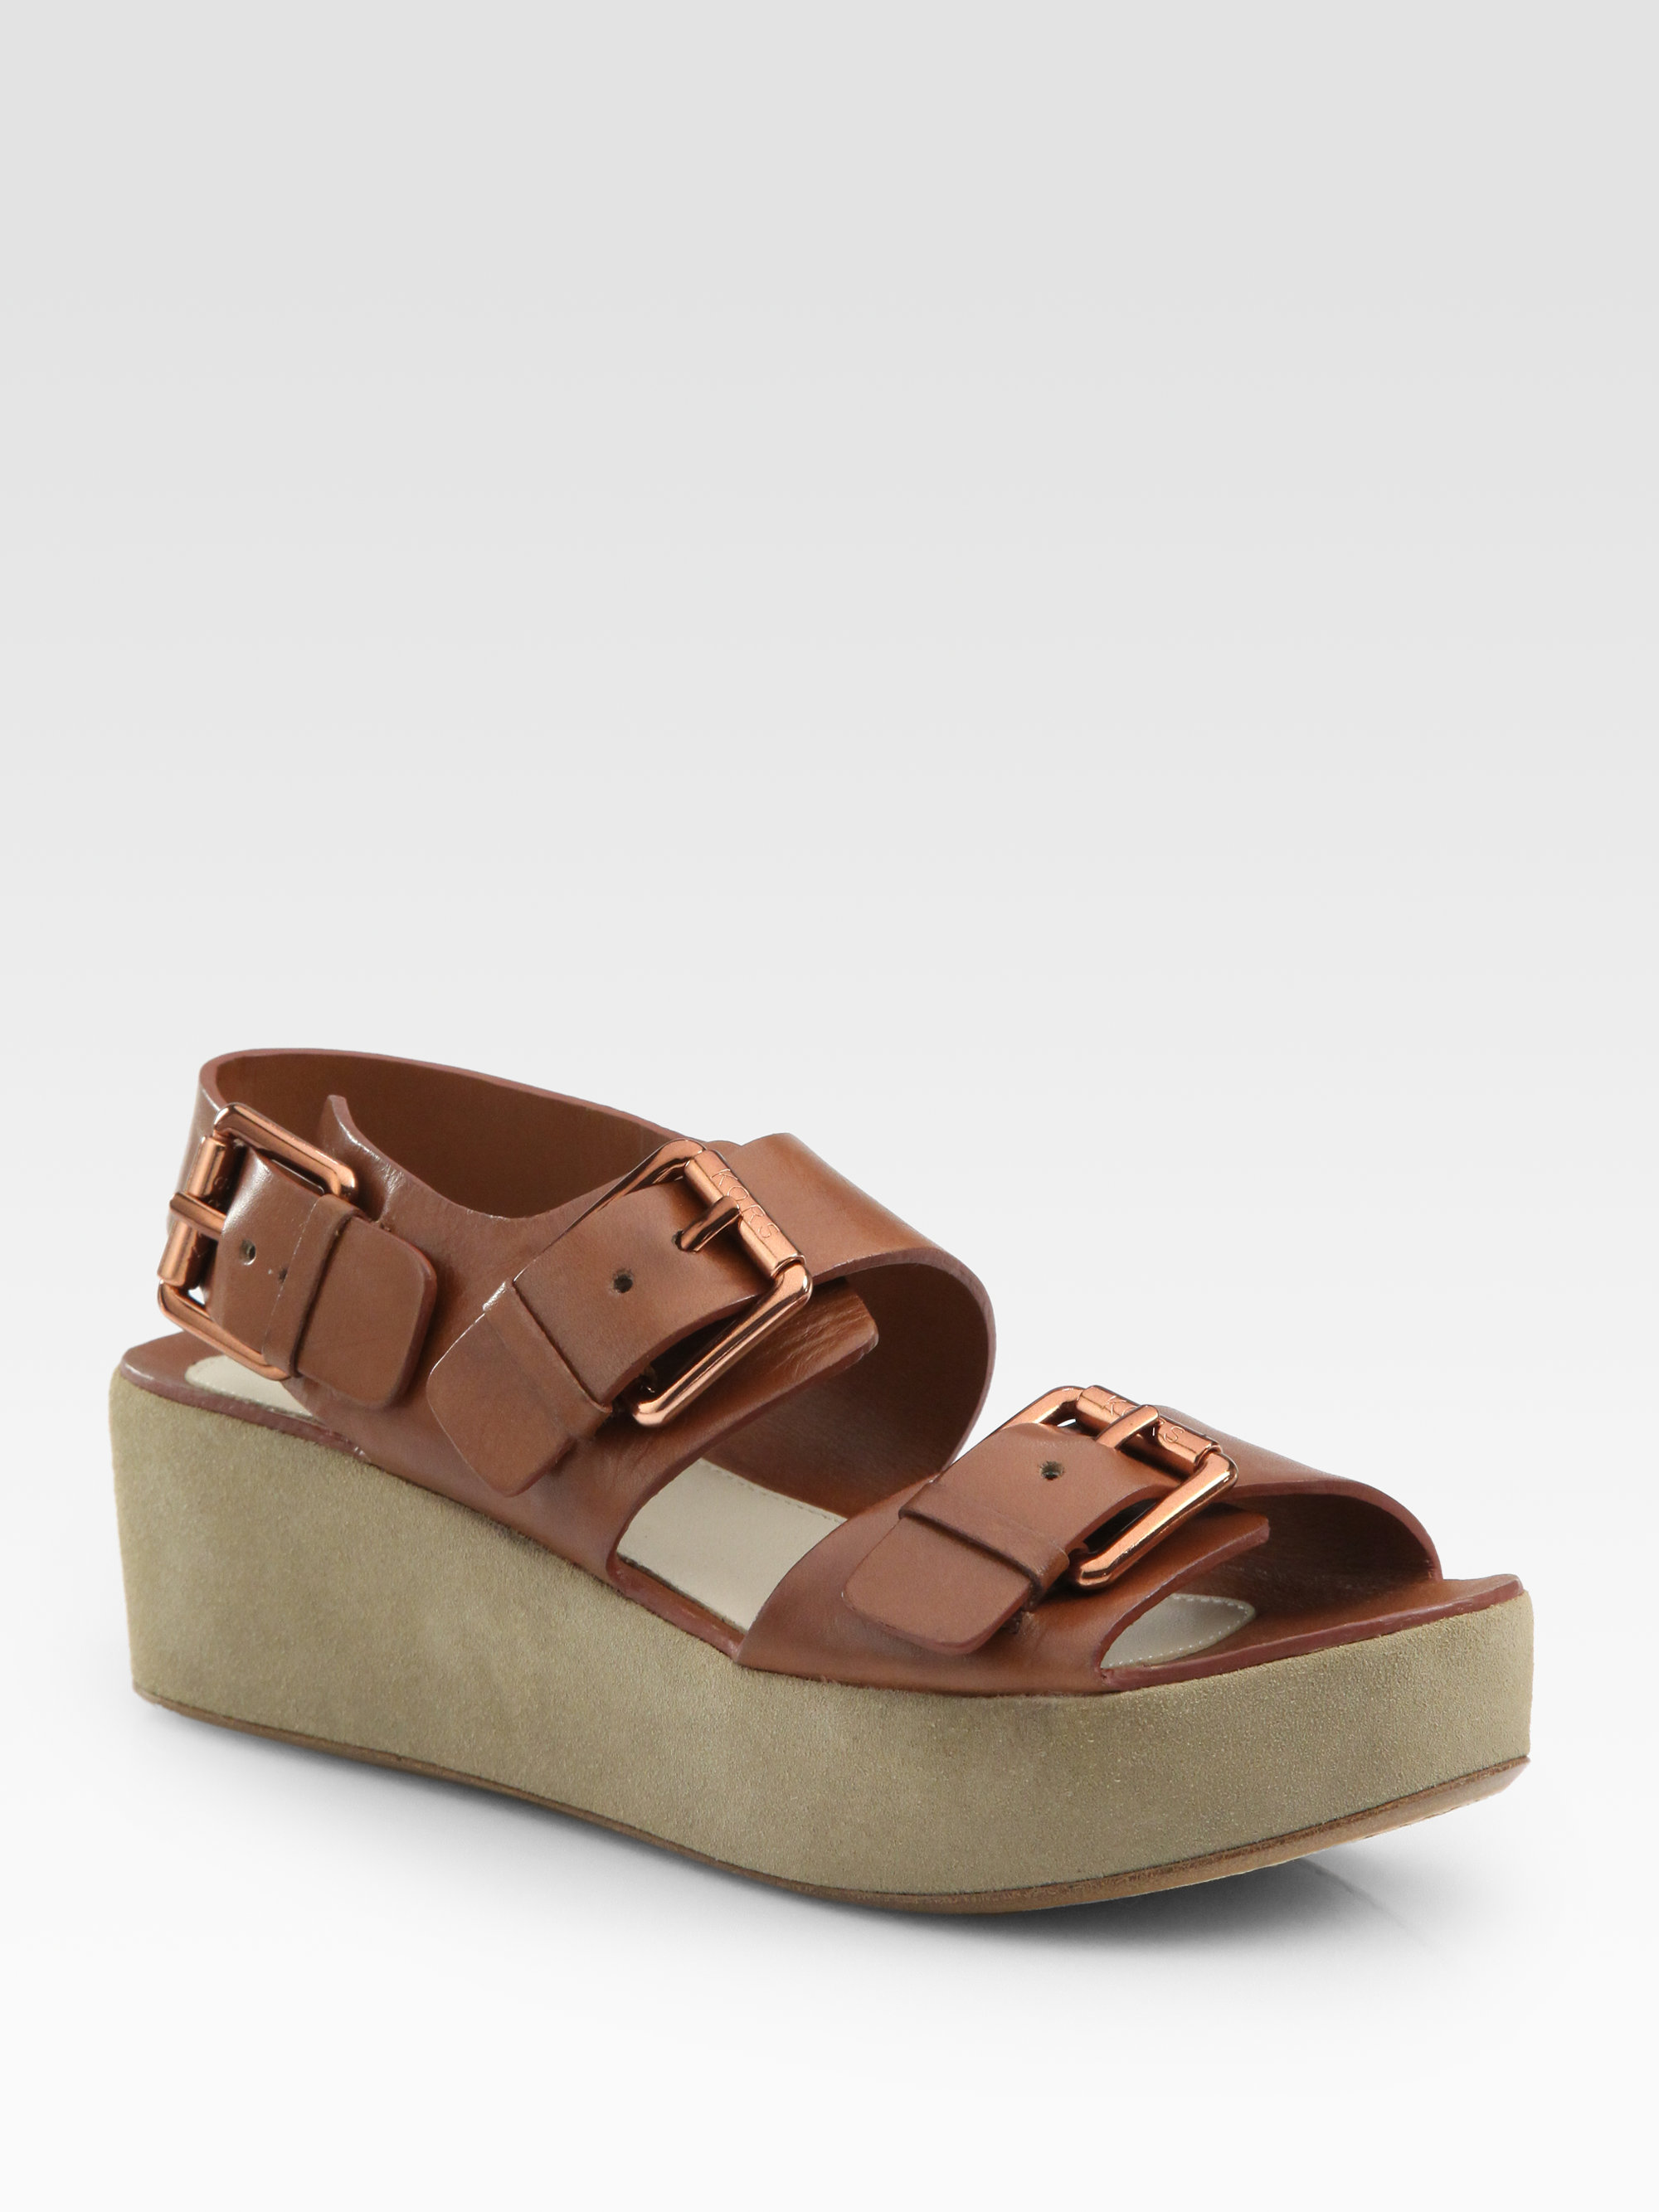 Lyst Kors By Michael Kors Zoe Leather And Suede Platform